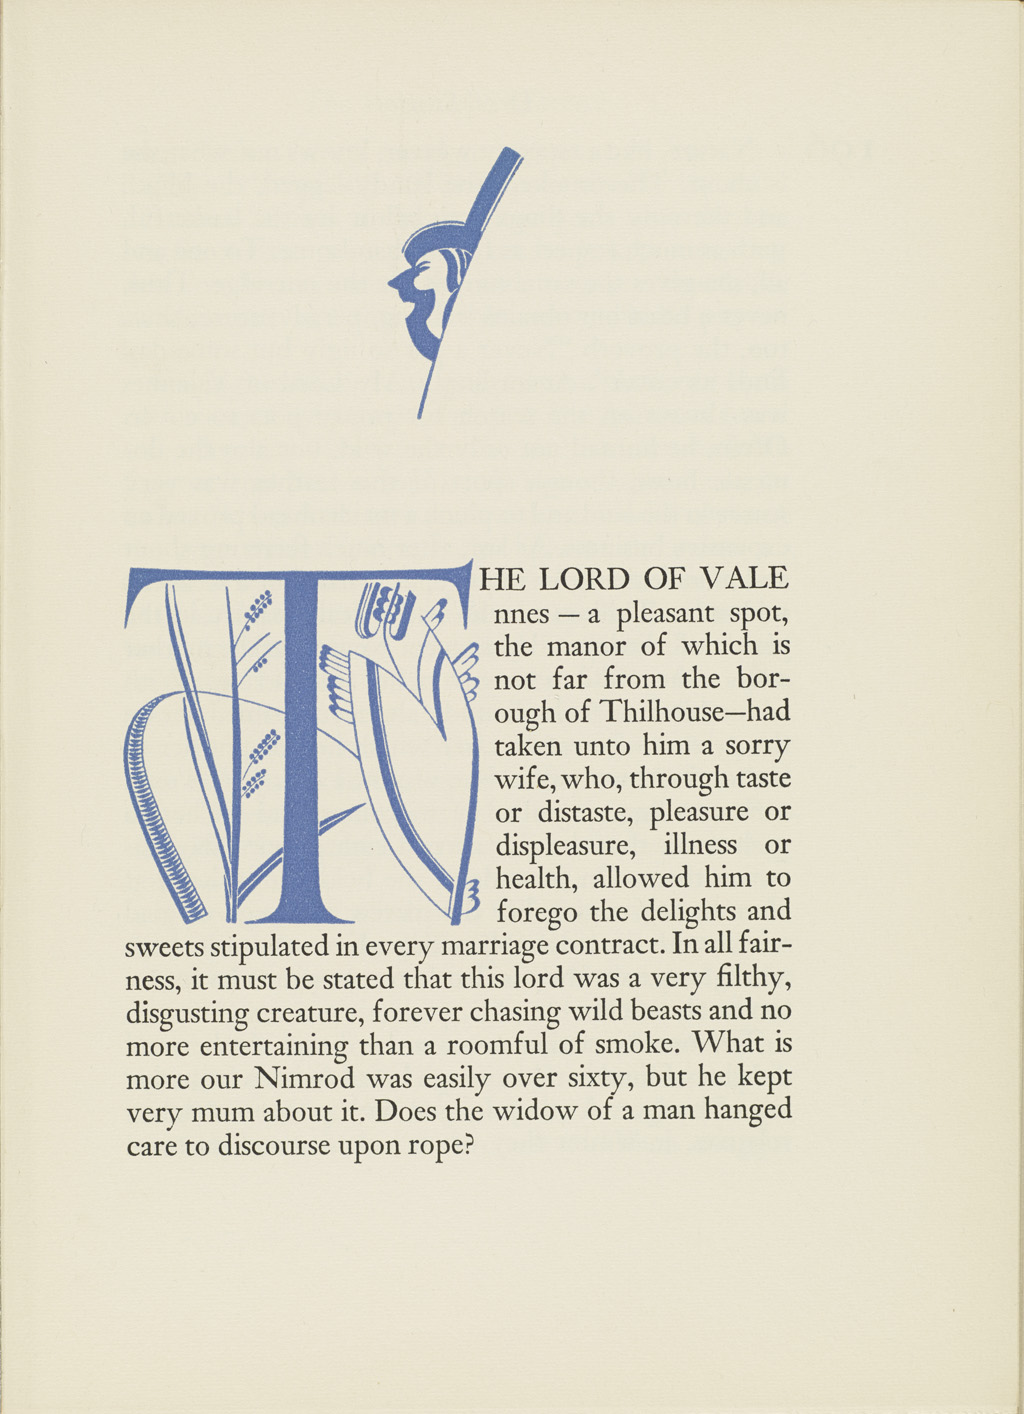 Chapter opening from volume II of Droll Stories by Honoré de Balzac (New York: The Limited Editions Club, 1932). Illustration, initial and typography by W.A. Dwiggins.